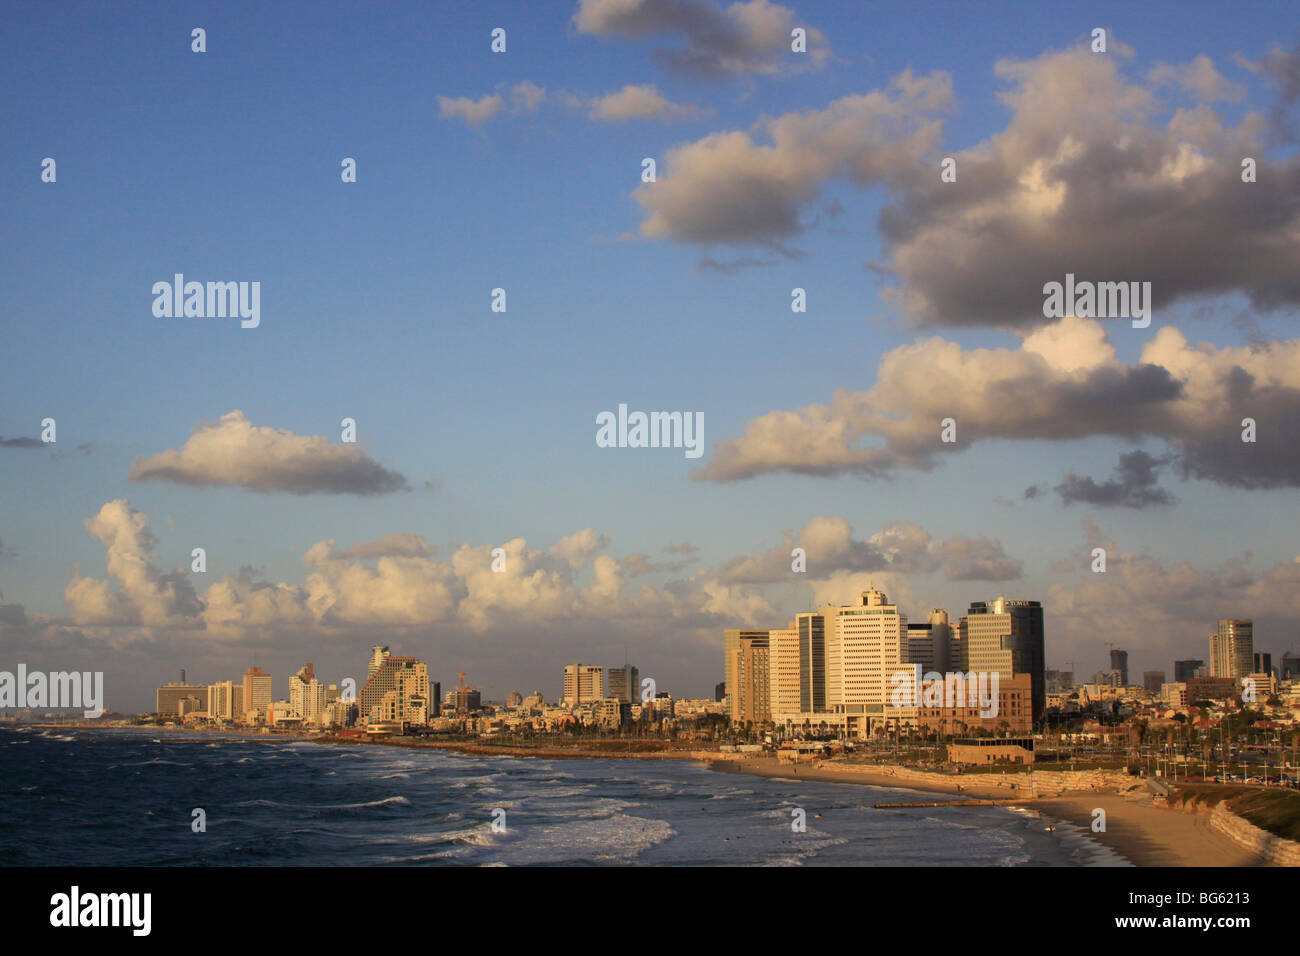 Israel, Tel Aviv coastline Stock Photo